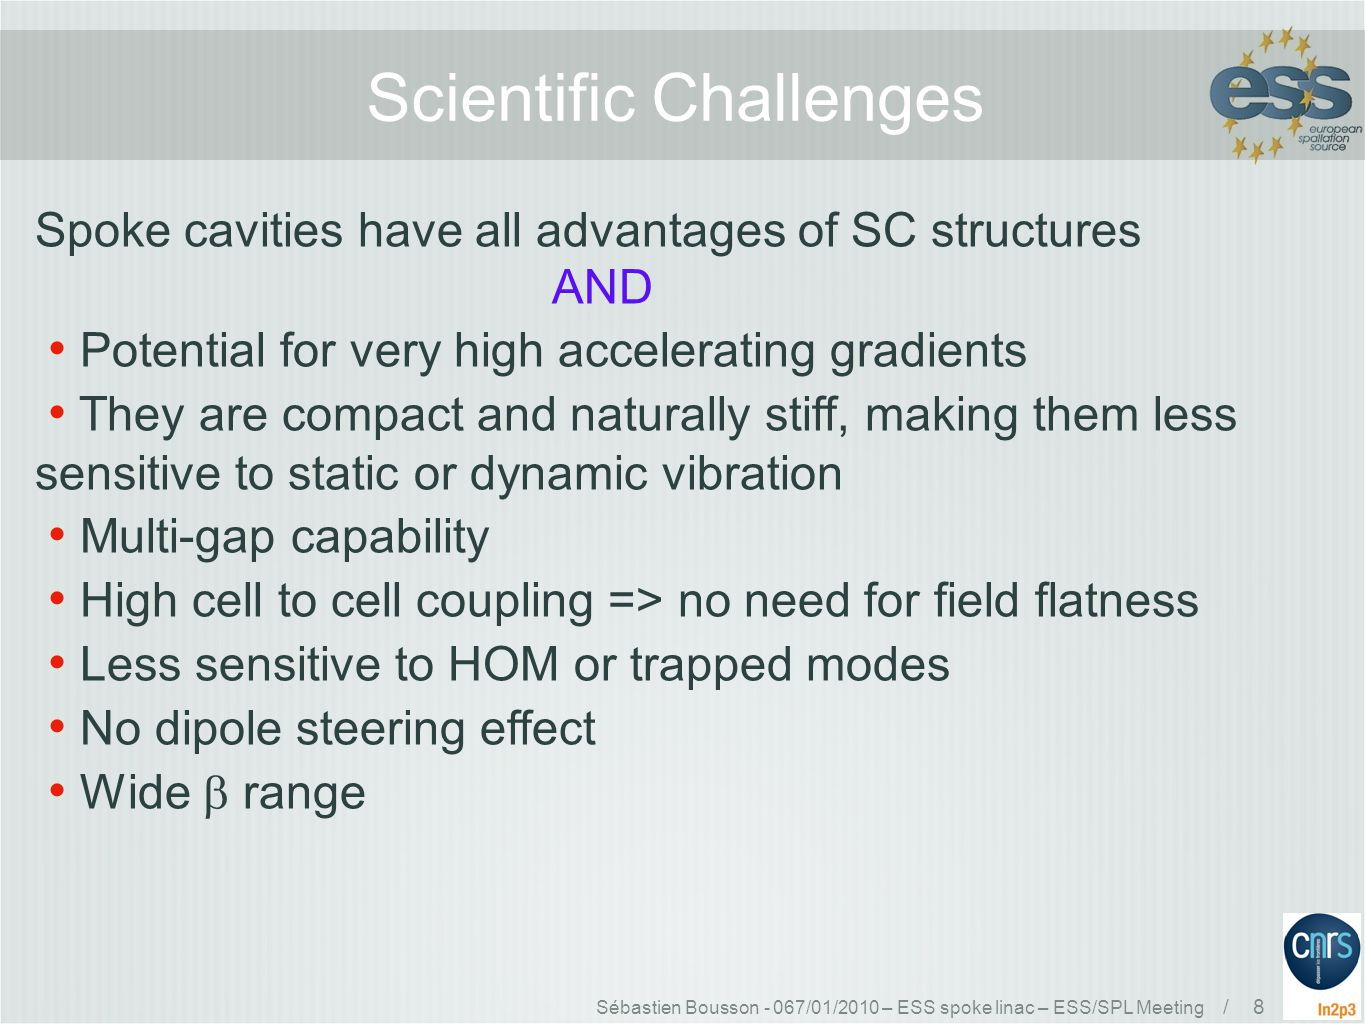 Sébastien Bousson - 067/01/2010 – ESS spoke linac – ESS/SPL Meeting / 8 Scientific Challenges Spoke cavities have all advantages of SC structures AND Potential for very high accelerating gradients They are compact and naturally stiff, making them less sensitive to static or dynamic vibration Multi-gap capability High cell to cell coupling => no need for field flatness Less sensitive to HOM or trapped modes No dipole steering effect Wide  range